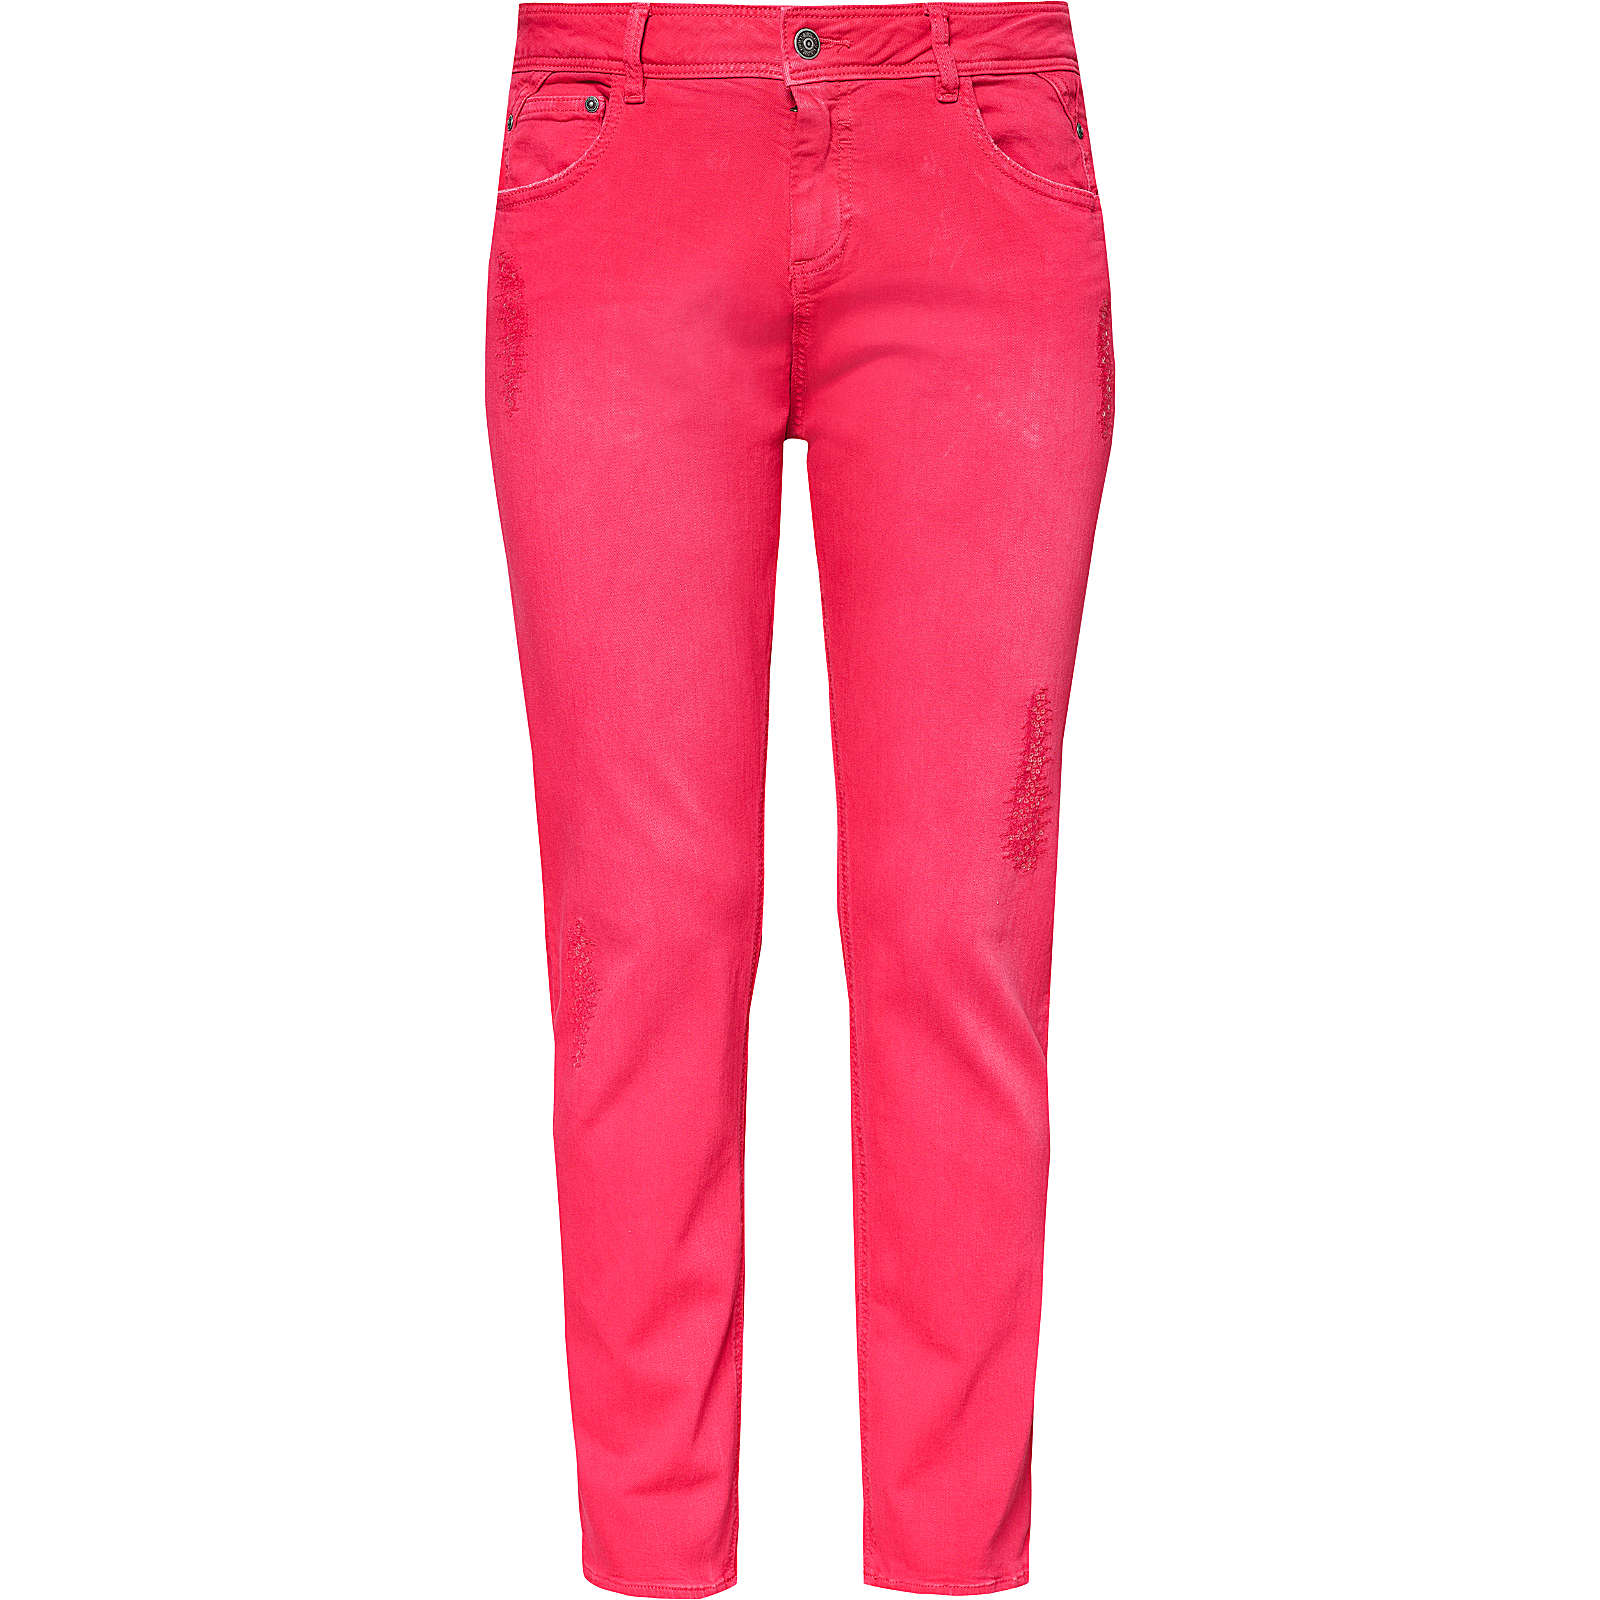 s.Oliver Jeans Casual Girlfriend pink Damen Gr. 34